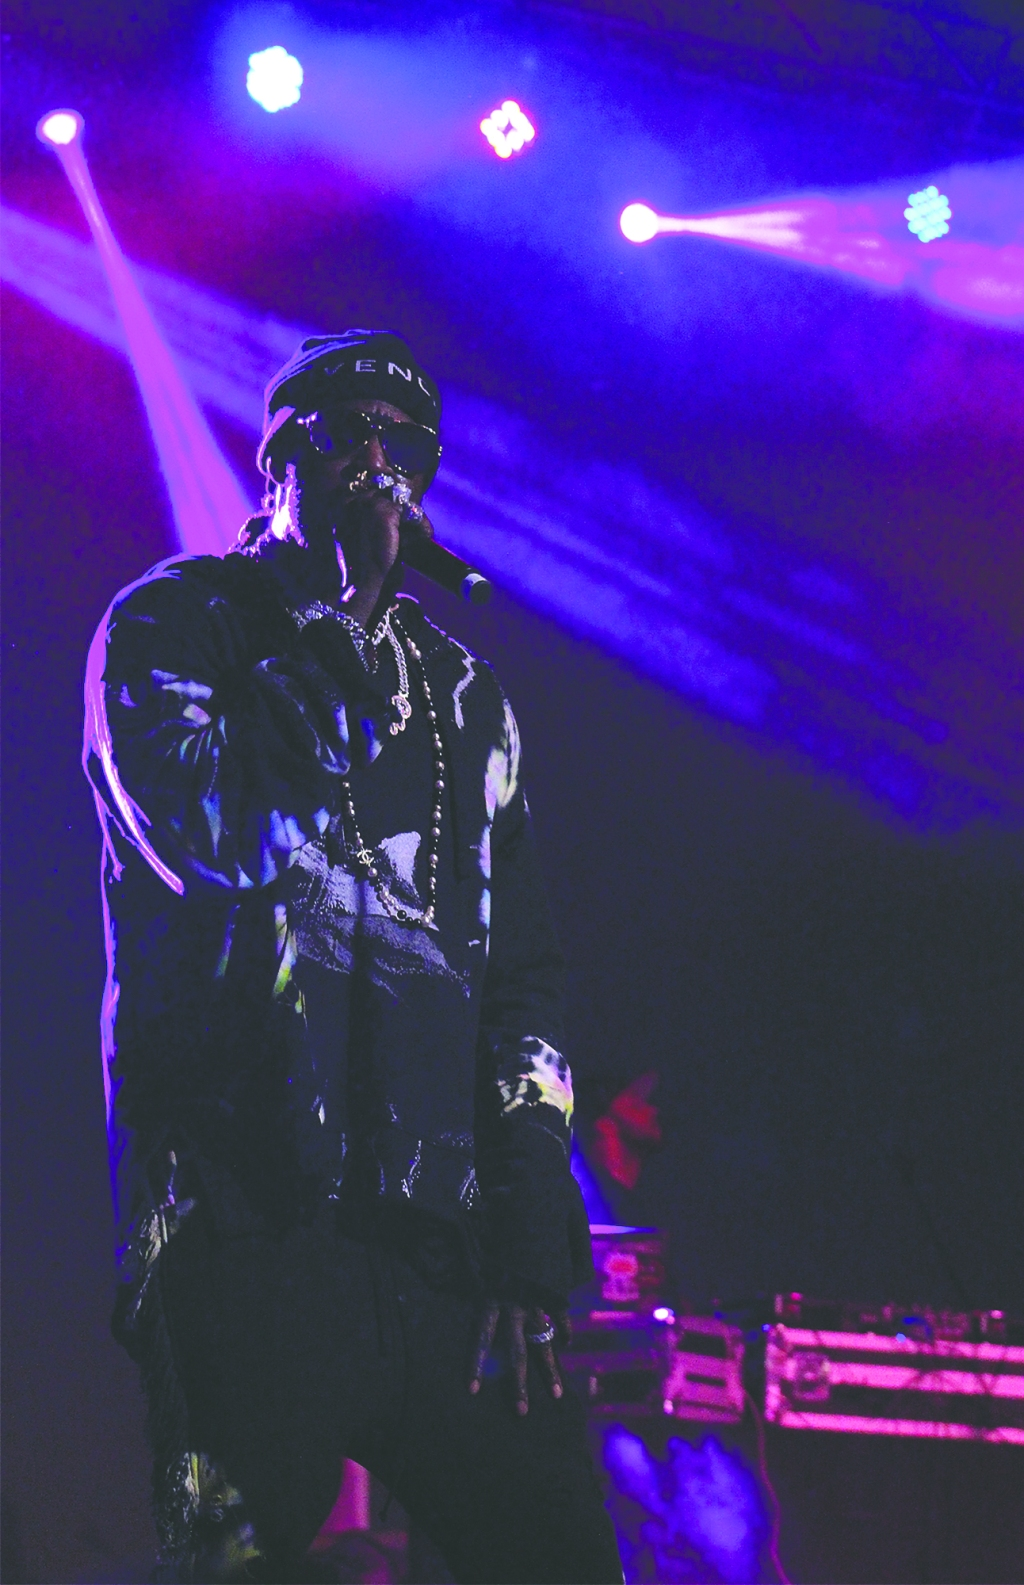 2Chainz headlining Saturday night's blowout at the Griffin Music Hall.